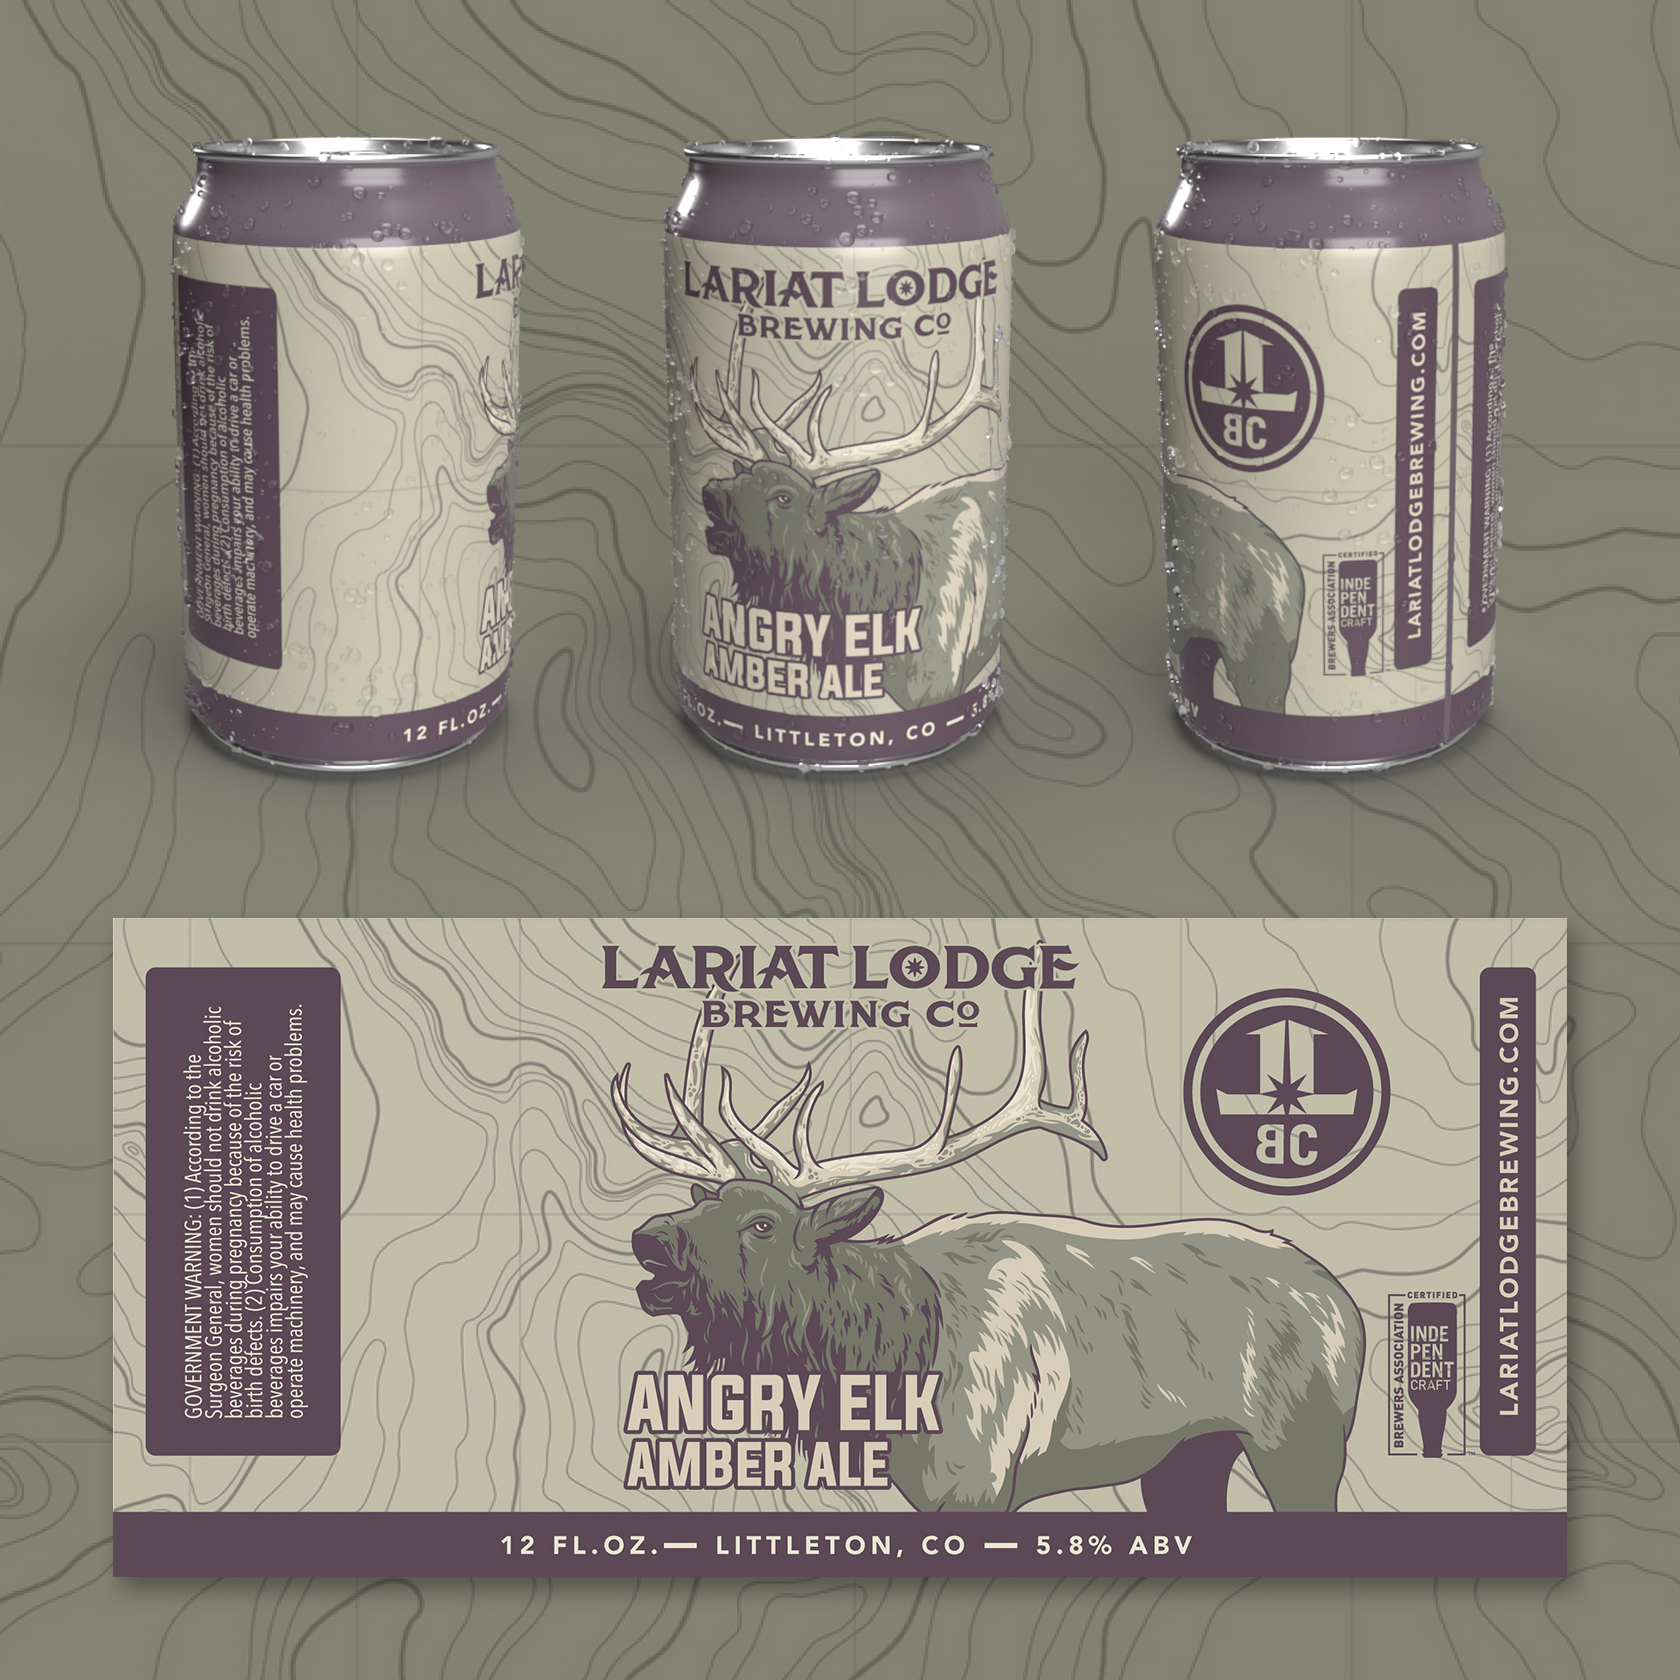 amber ale beer label design, beer label design, colorado beer label, colorado beer, colorado microbeer, amber beer label, beer label design, beer can label design, hi-five design